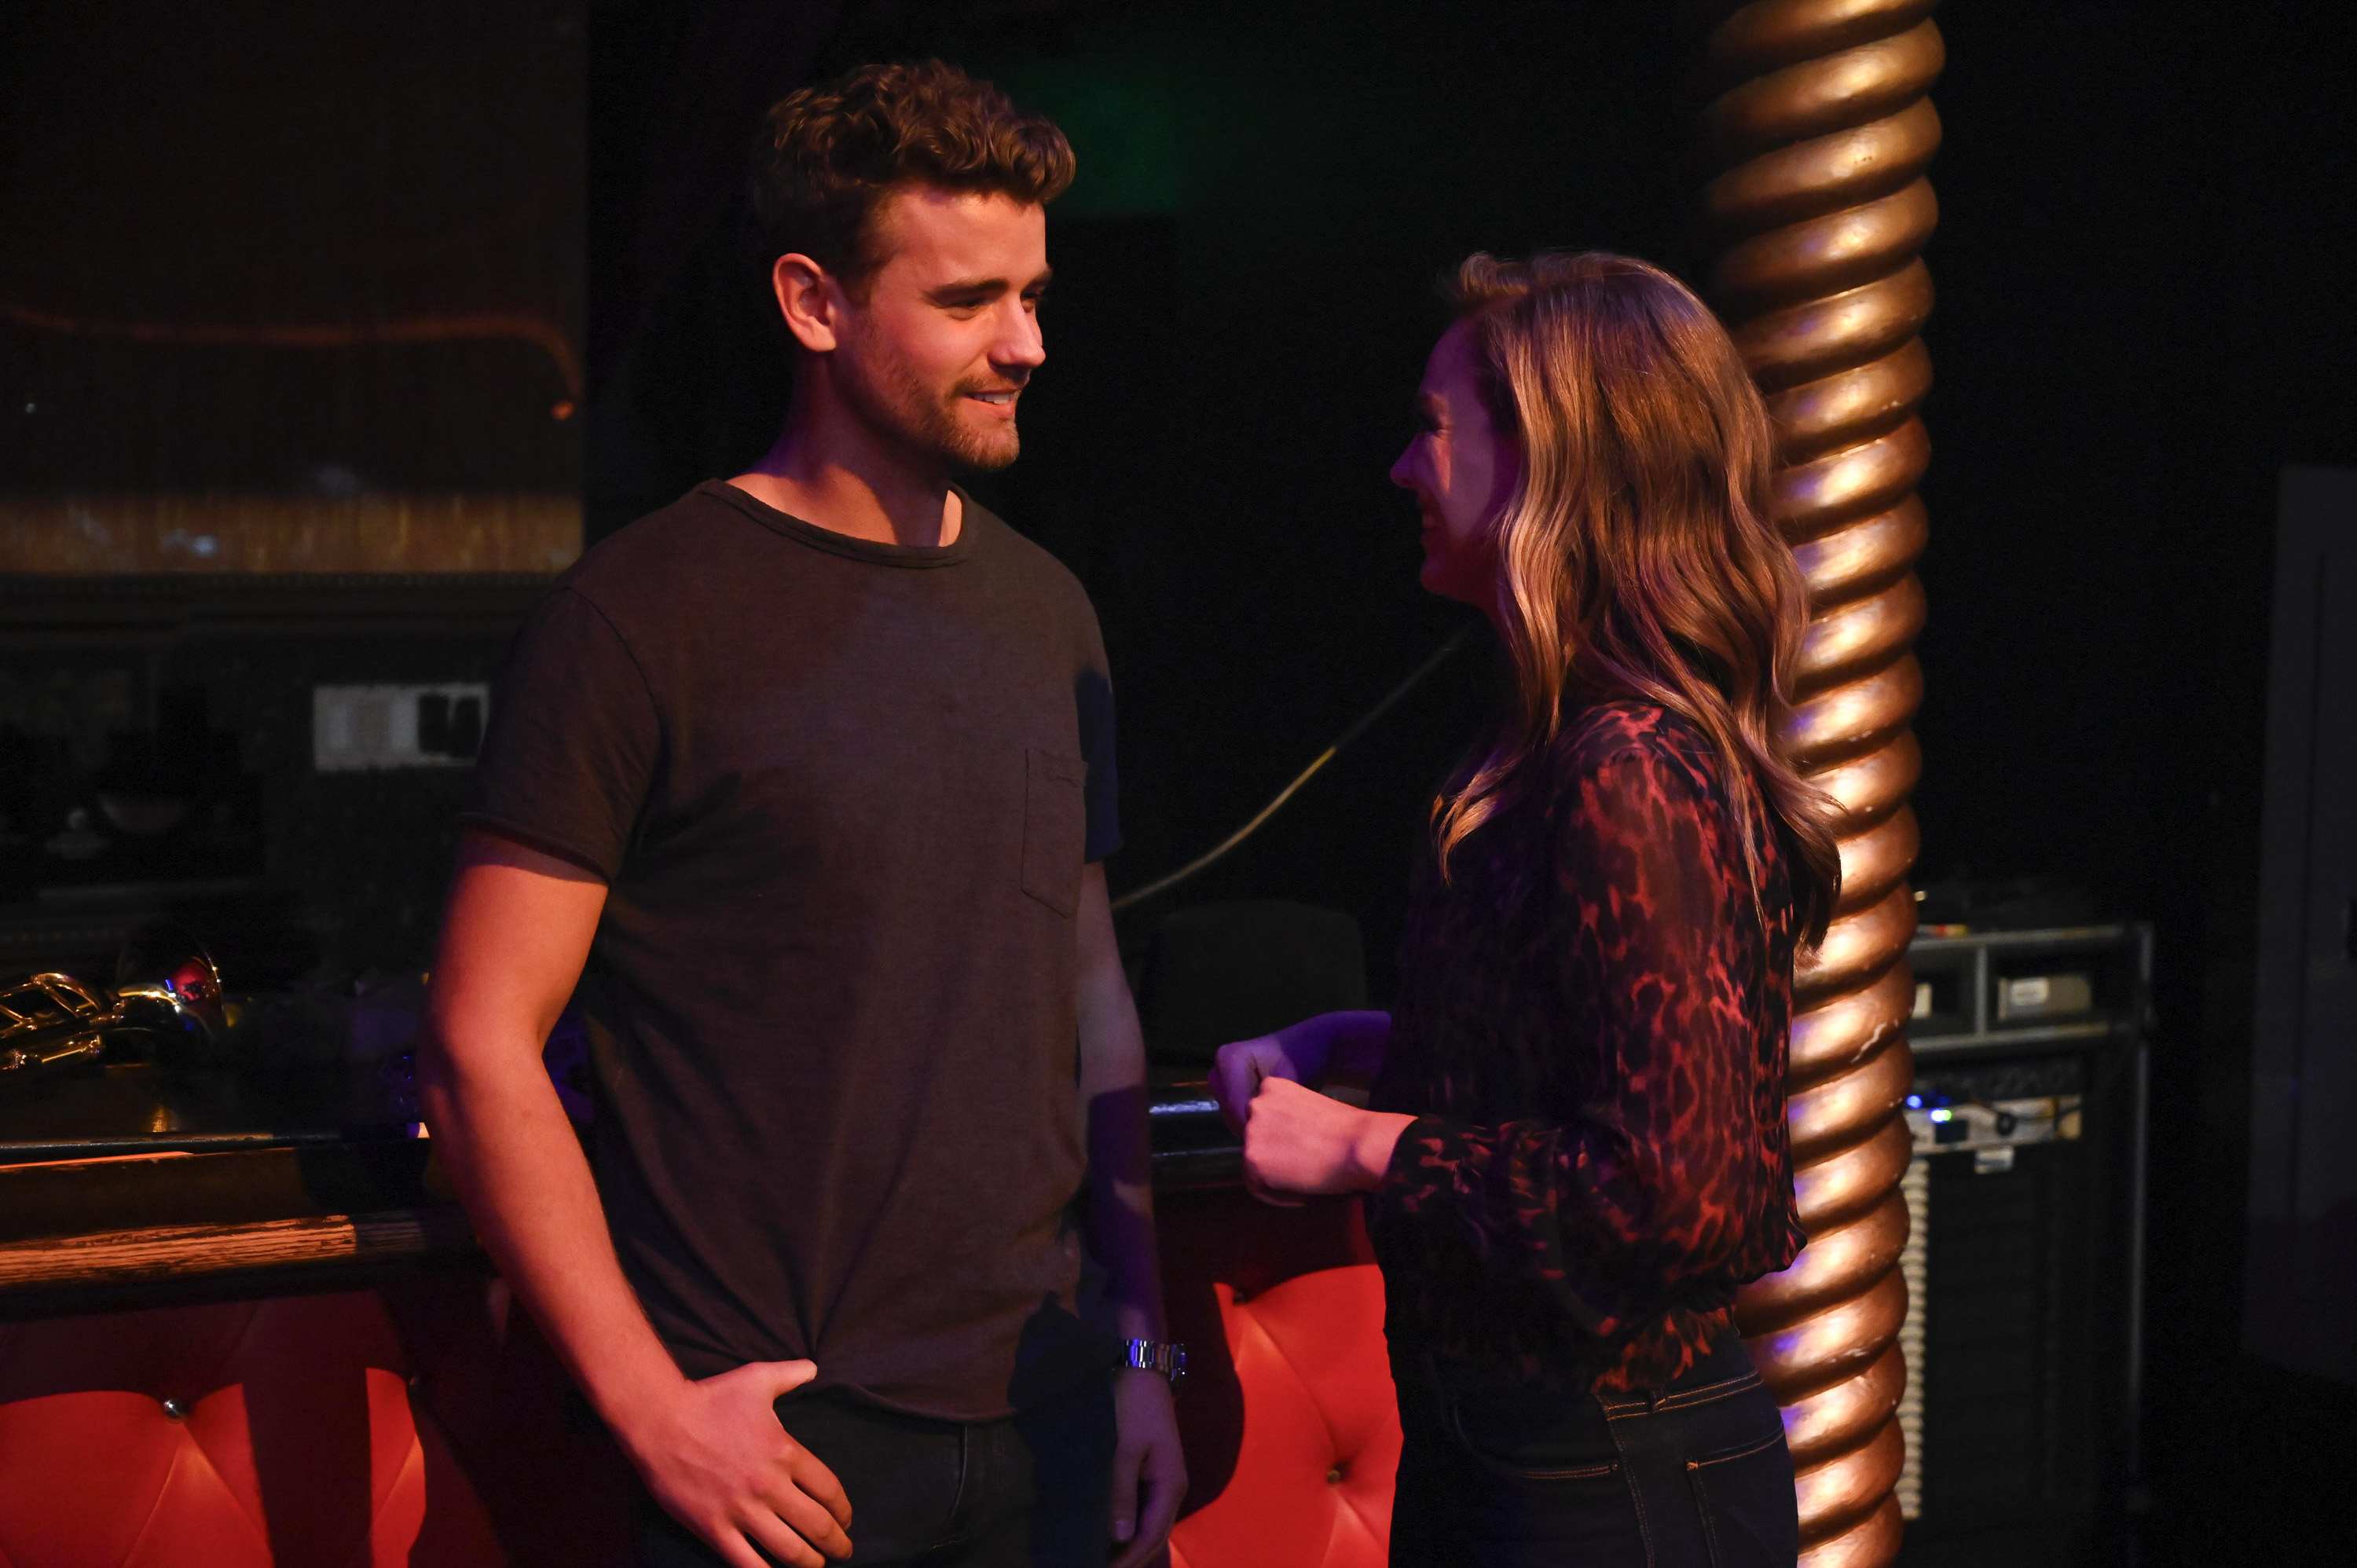 Looks like Luke S. is already smitten with Queen Hannah. (Image: John Fleenor/ ABC)